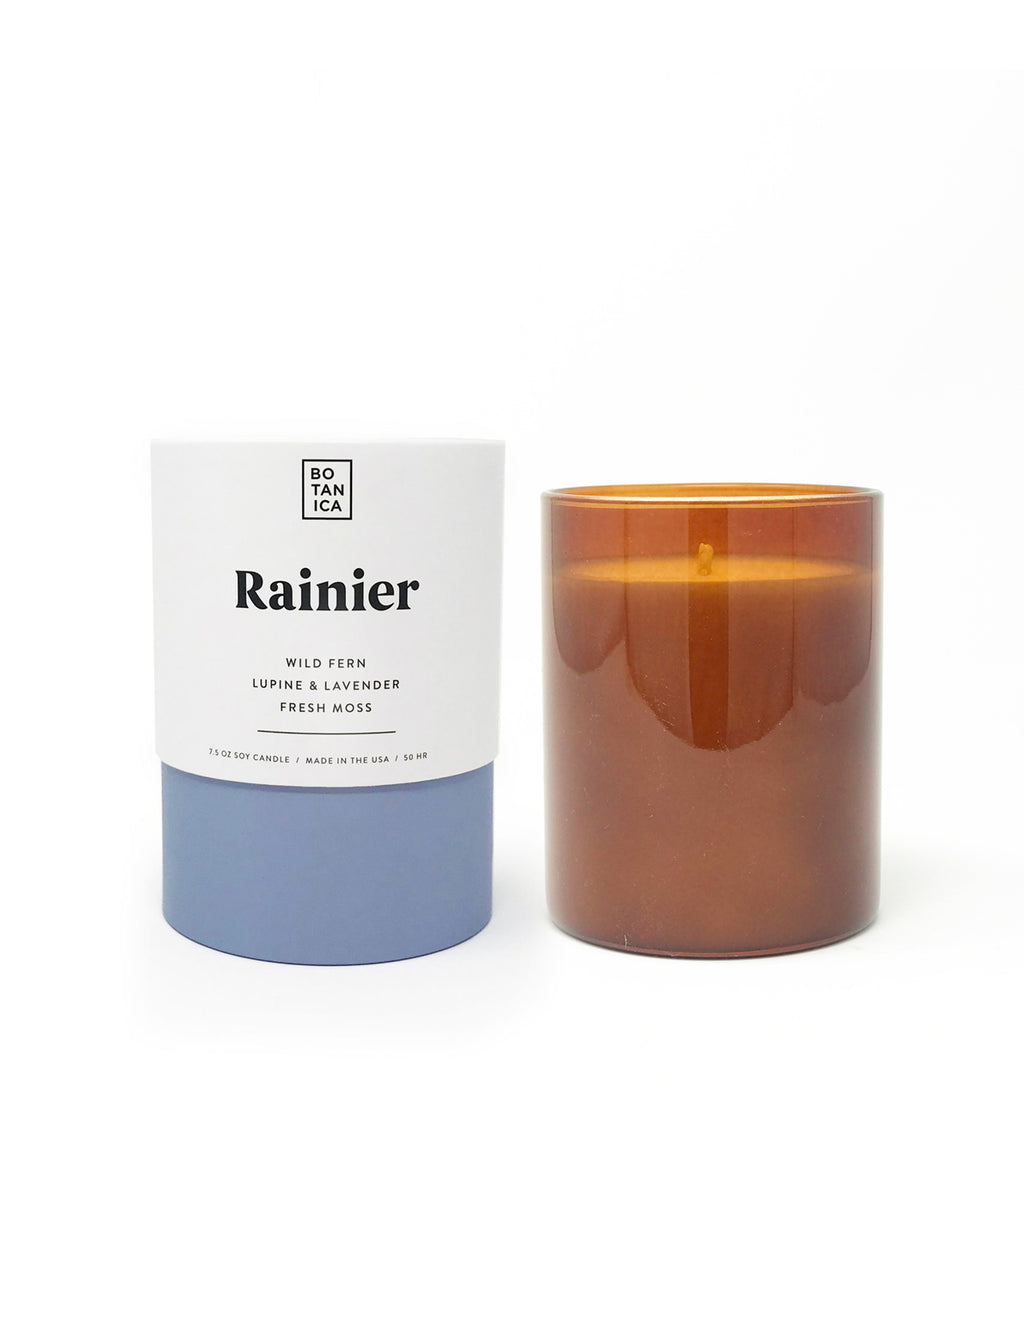 Botanica Rainier 7.5 oz Candle